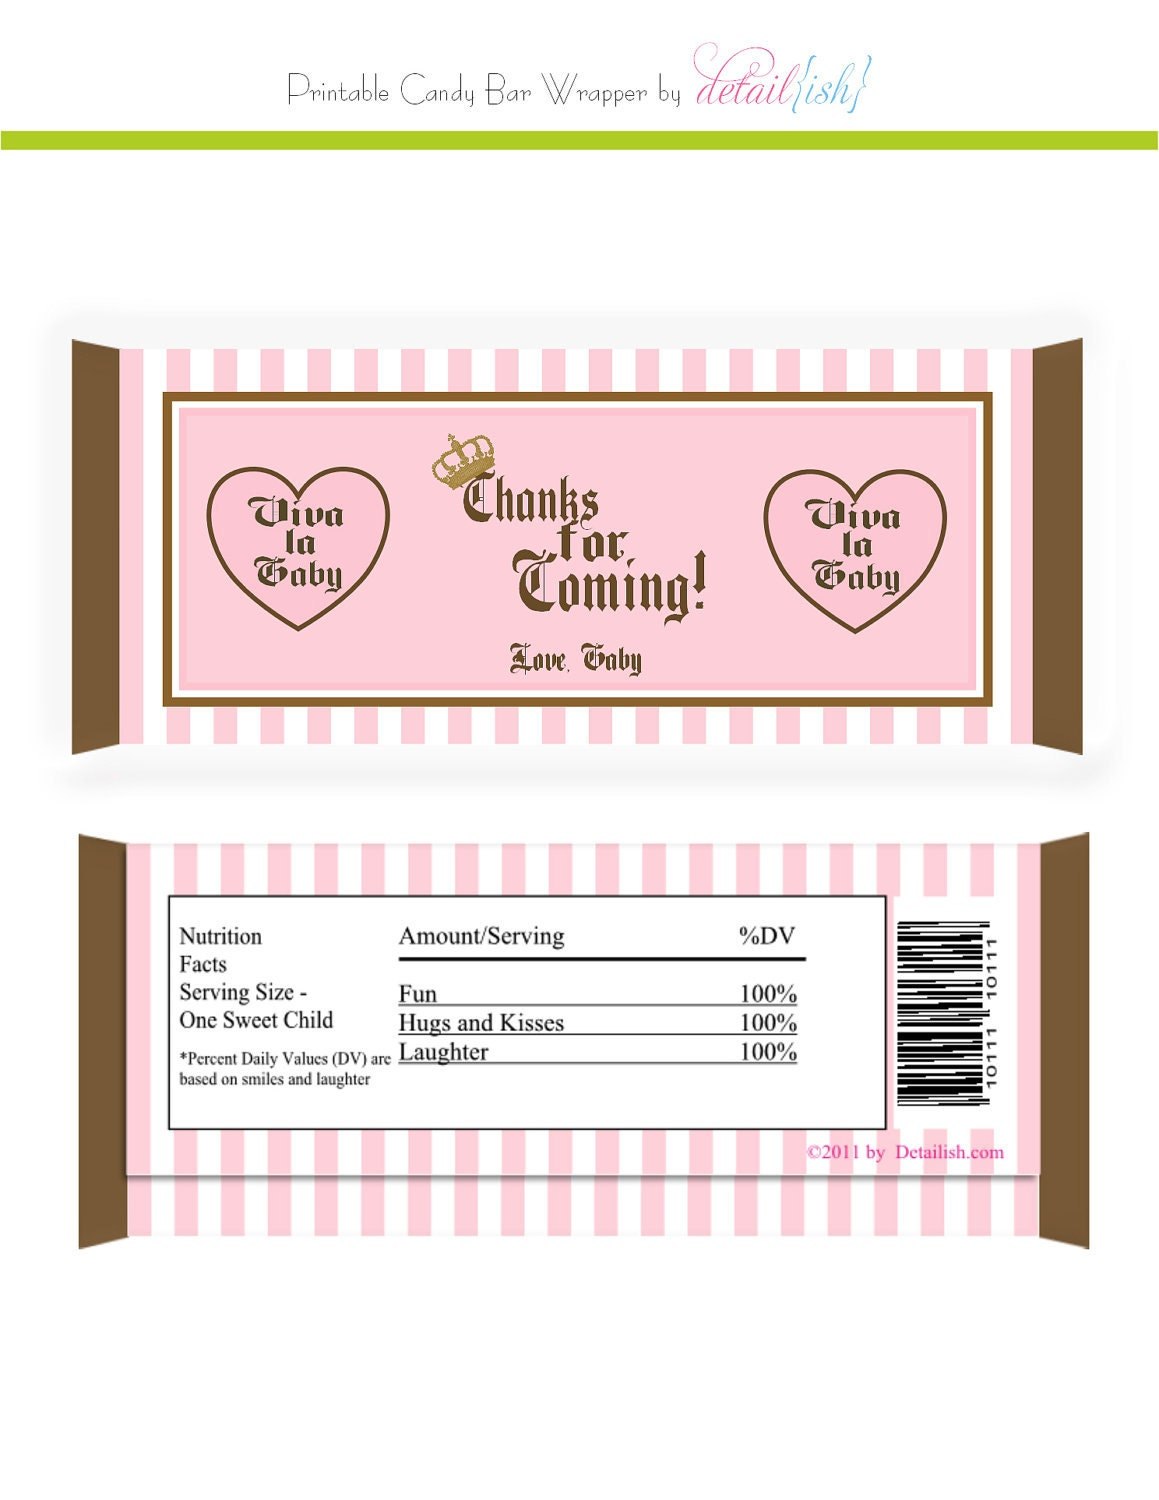 Blog archives sportmediaget for Templates for candy bar wrappers